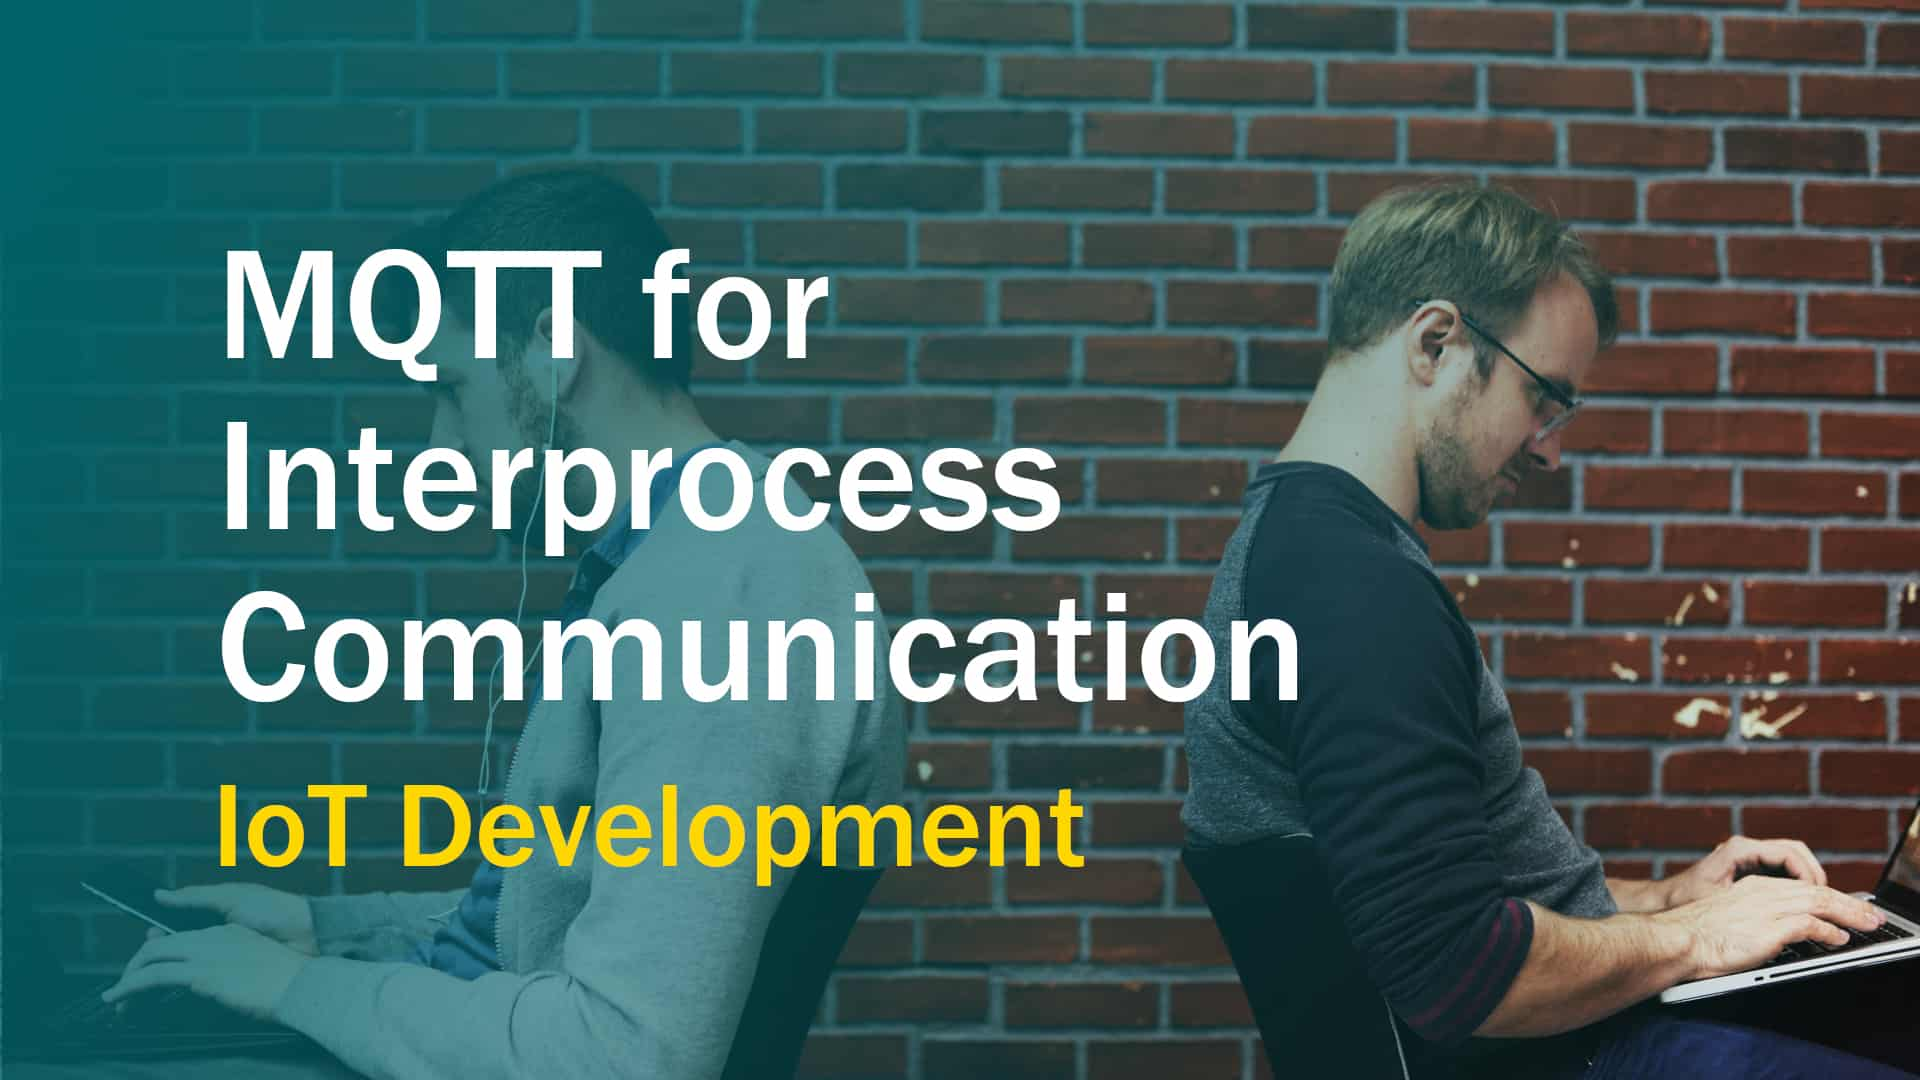 Using MQTT for Interprocess Communication in the Internet of